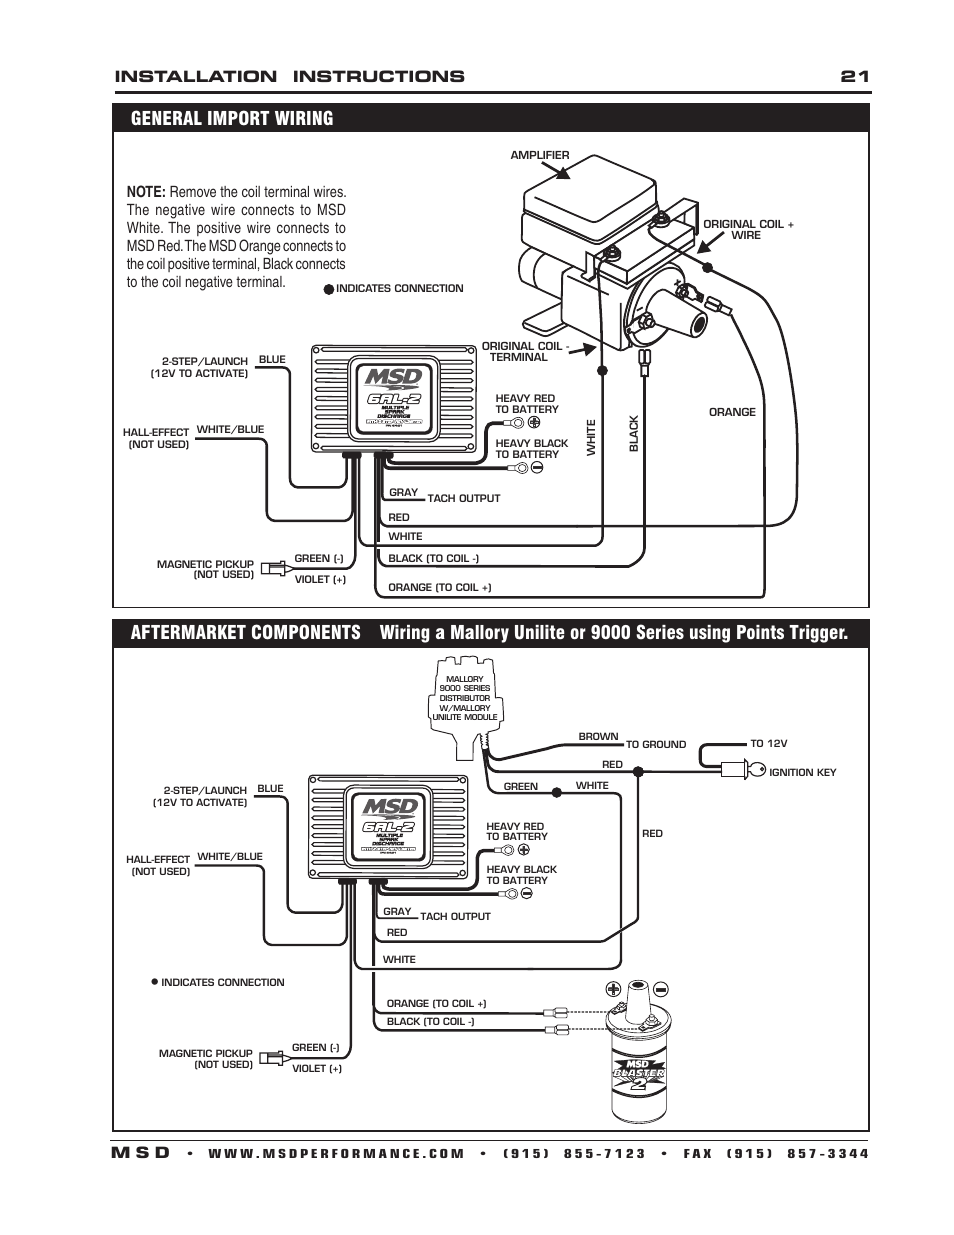 msd 6421 6al 2 ignition control installation page21?resize\\\\\\\=665%2C861 mallory unilite wiring diagram & how do i wire my mallory mallory 6al wiring diagram at gsmportal.co